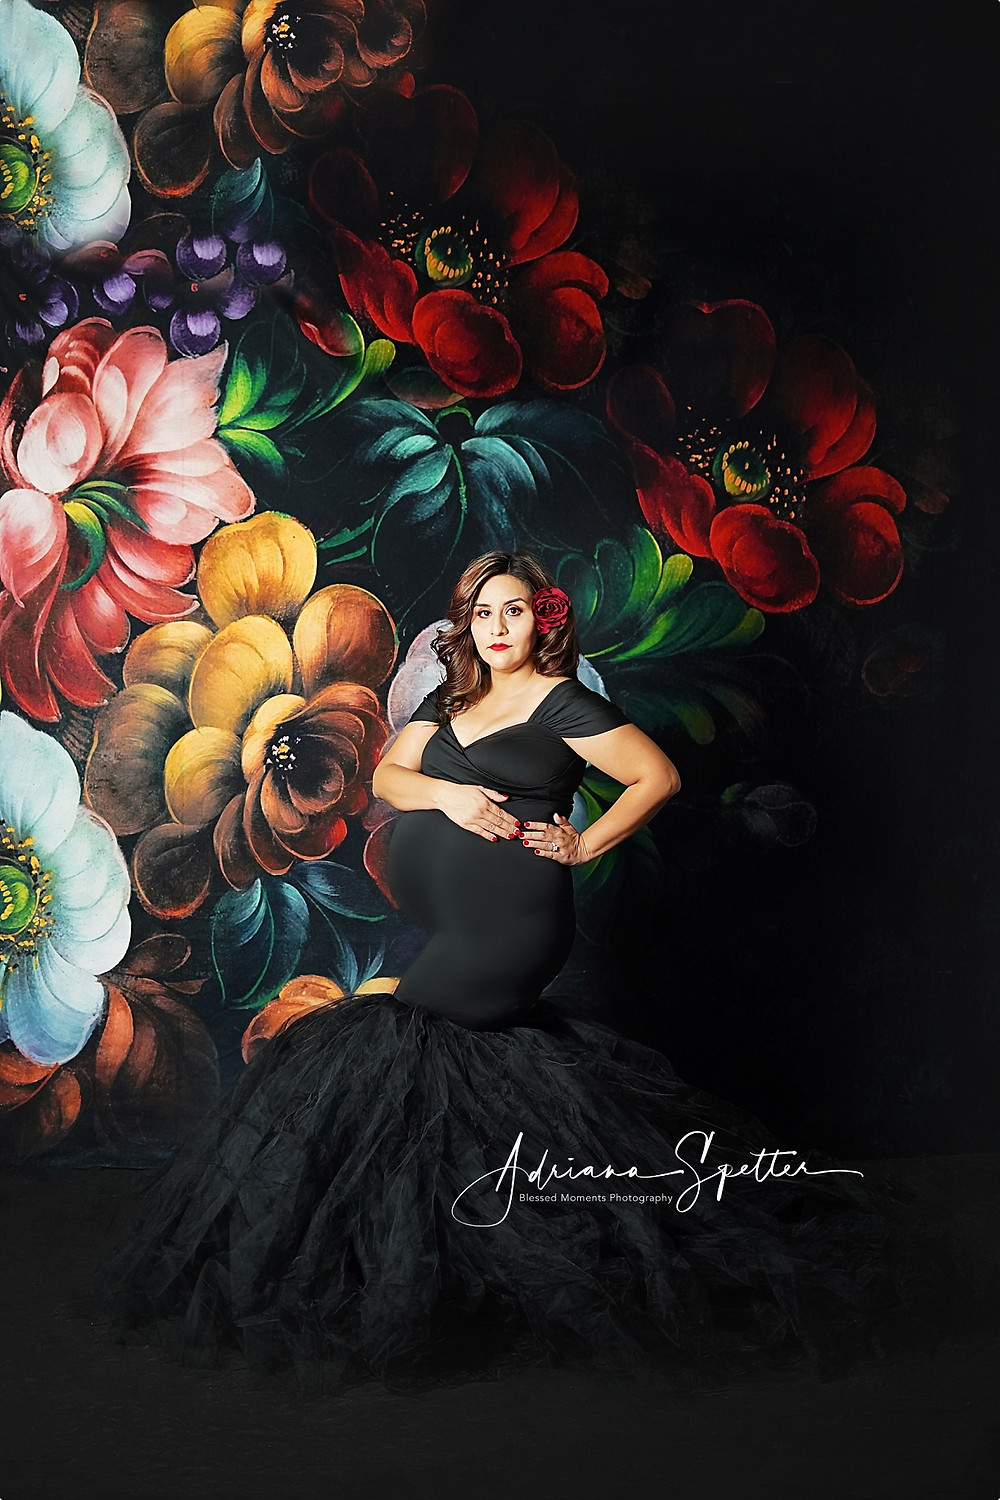 Studio maternity photo shot at Blessed Moments Photography Studio.  Mama is wearing a black tulie gown against a floral backdrop.